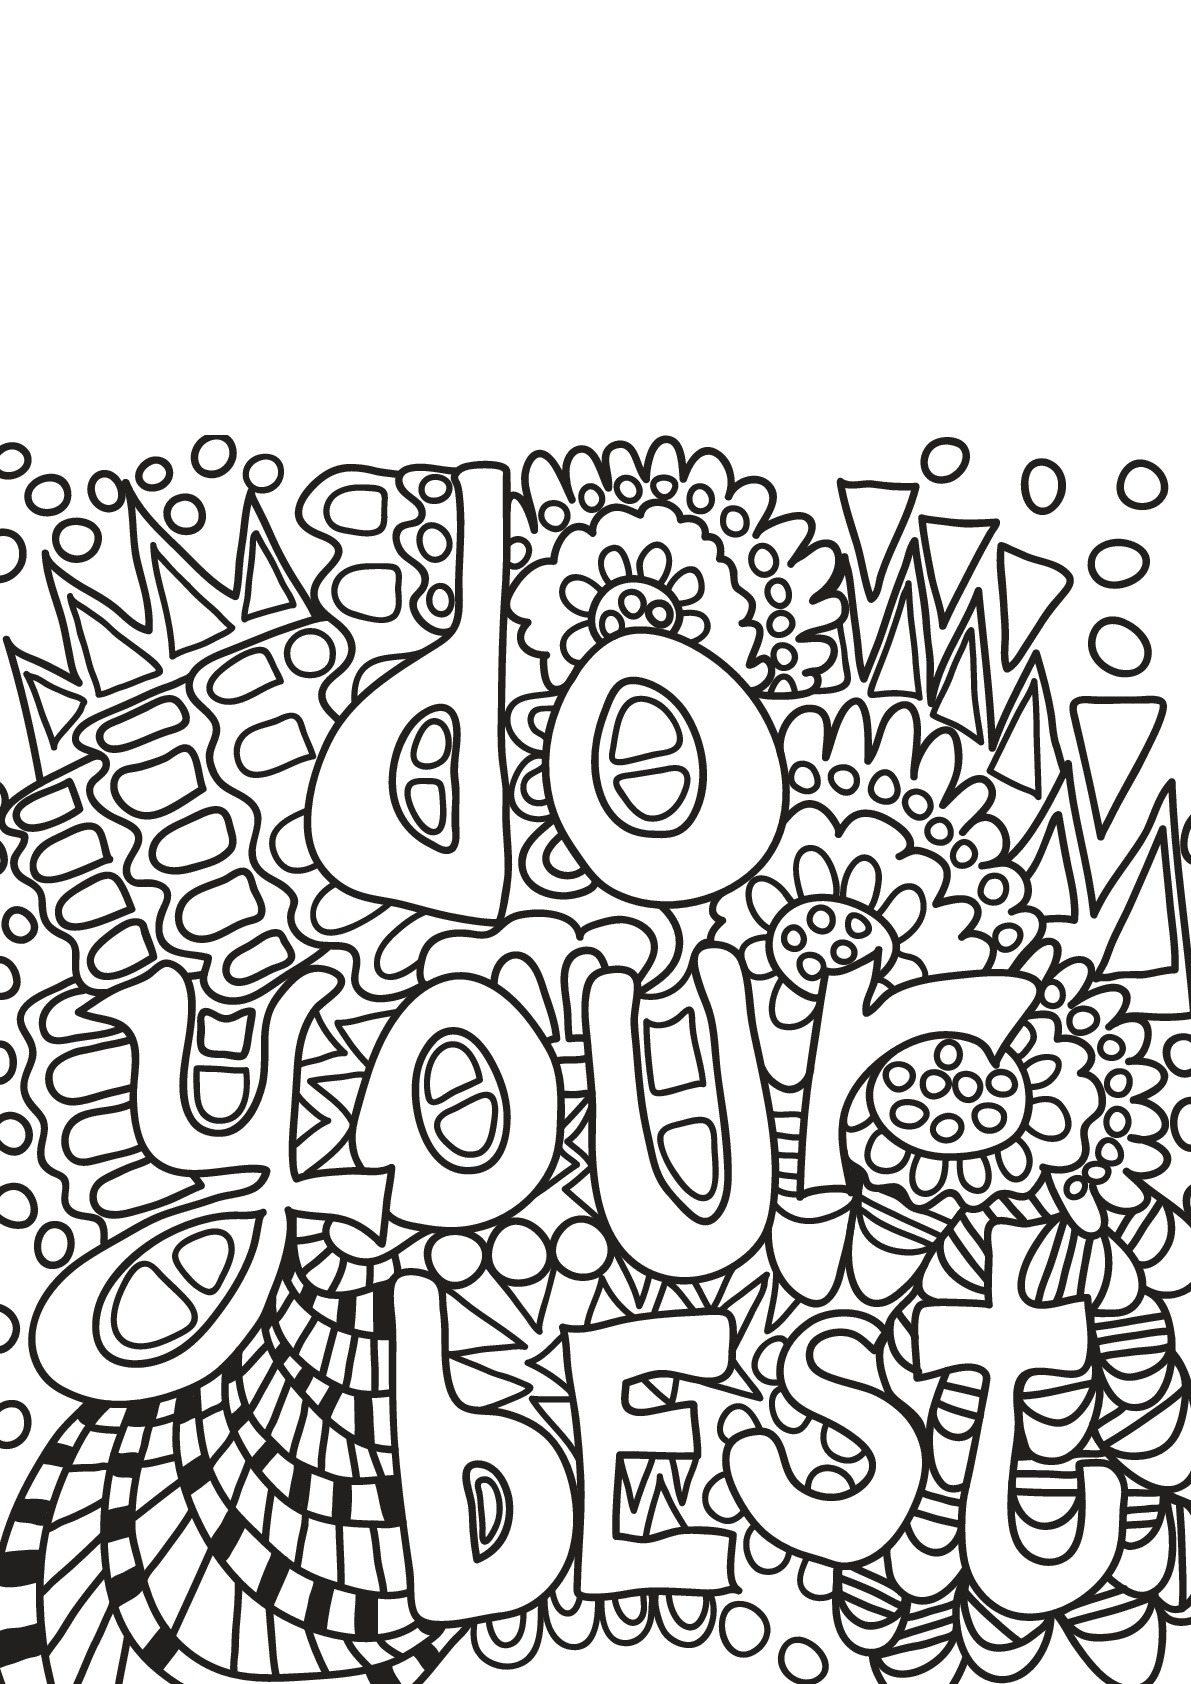 Free book quote 17 - Positive & inspiring quotes Adult Coloring Pages